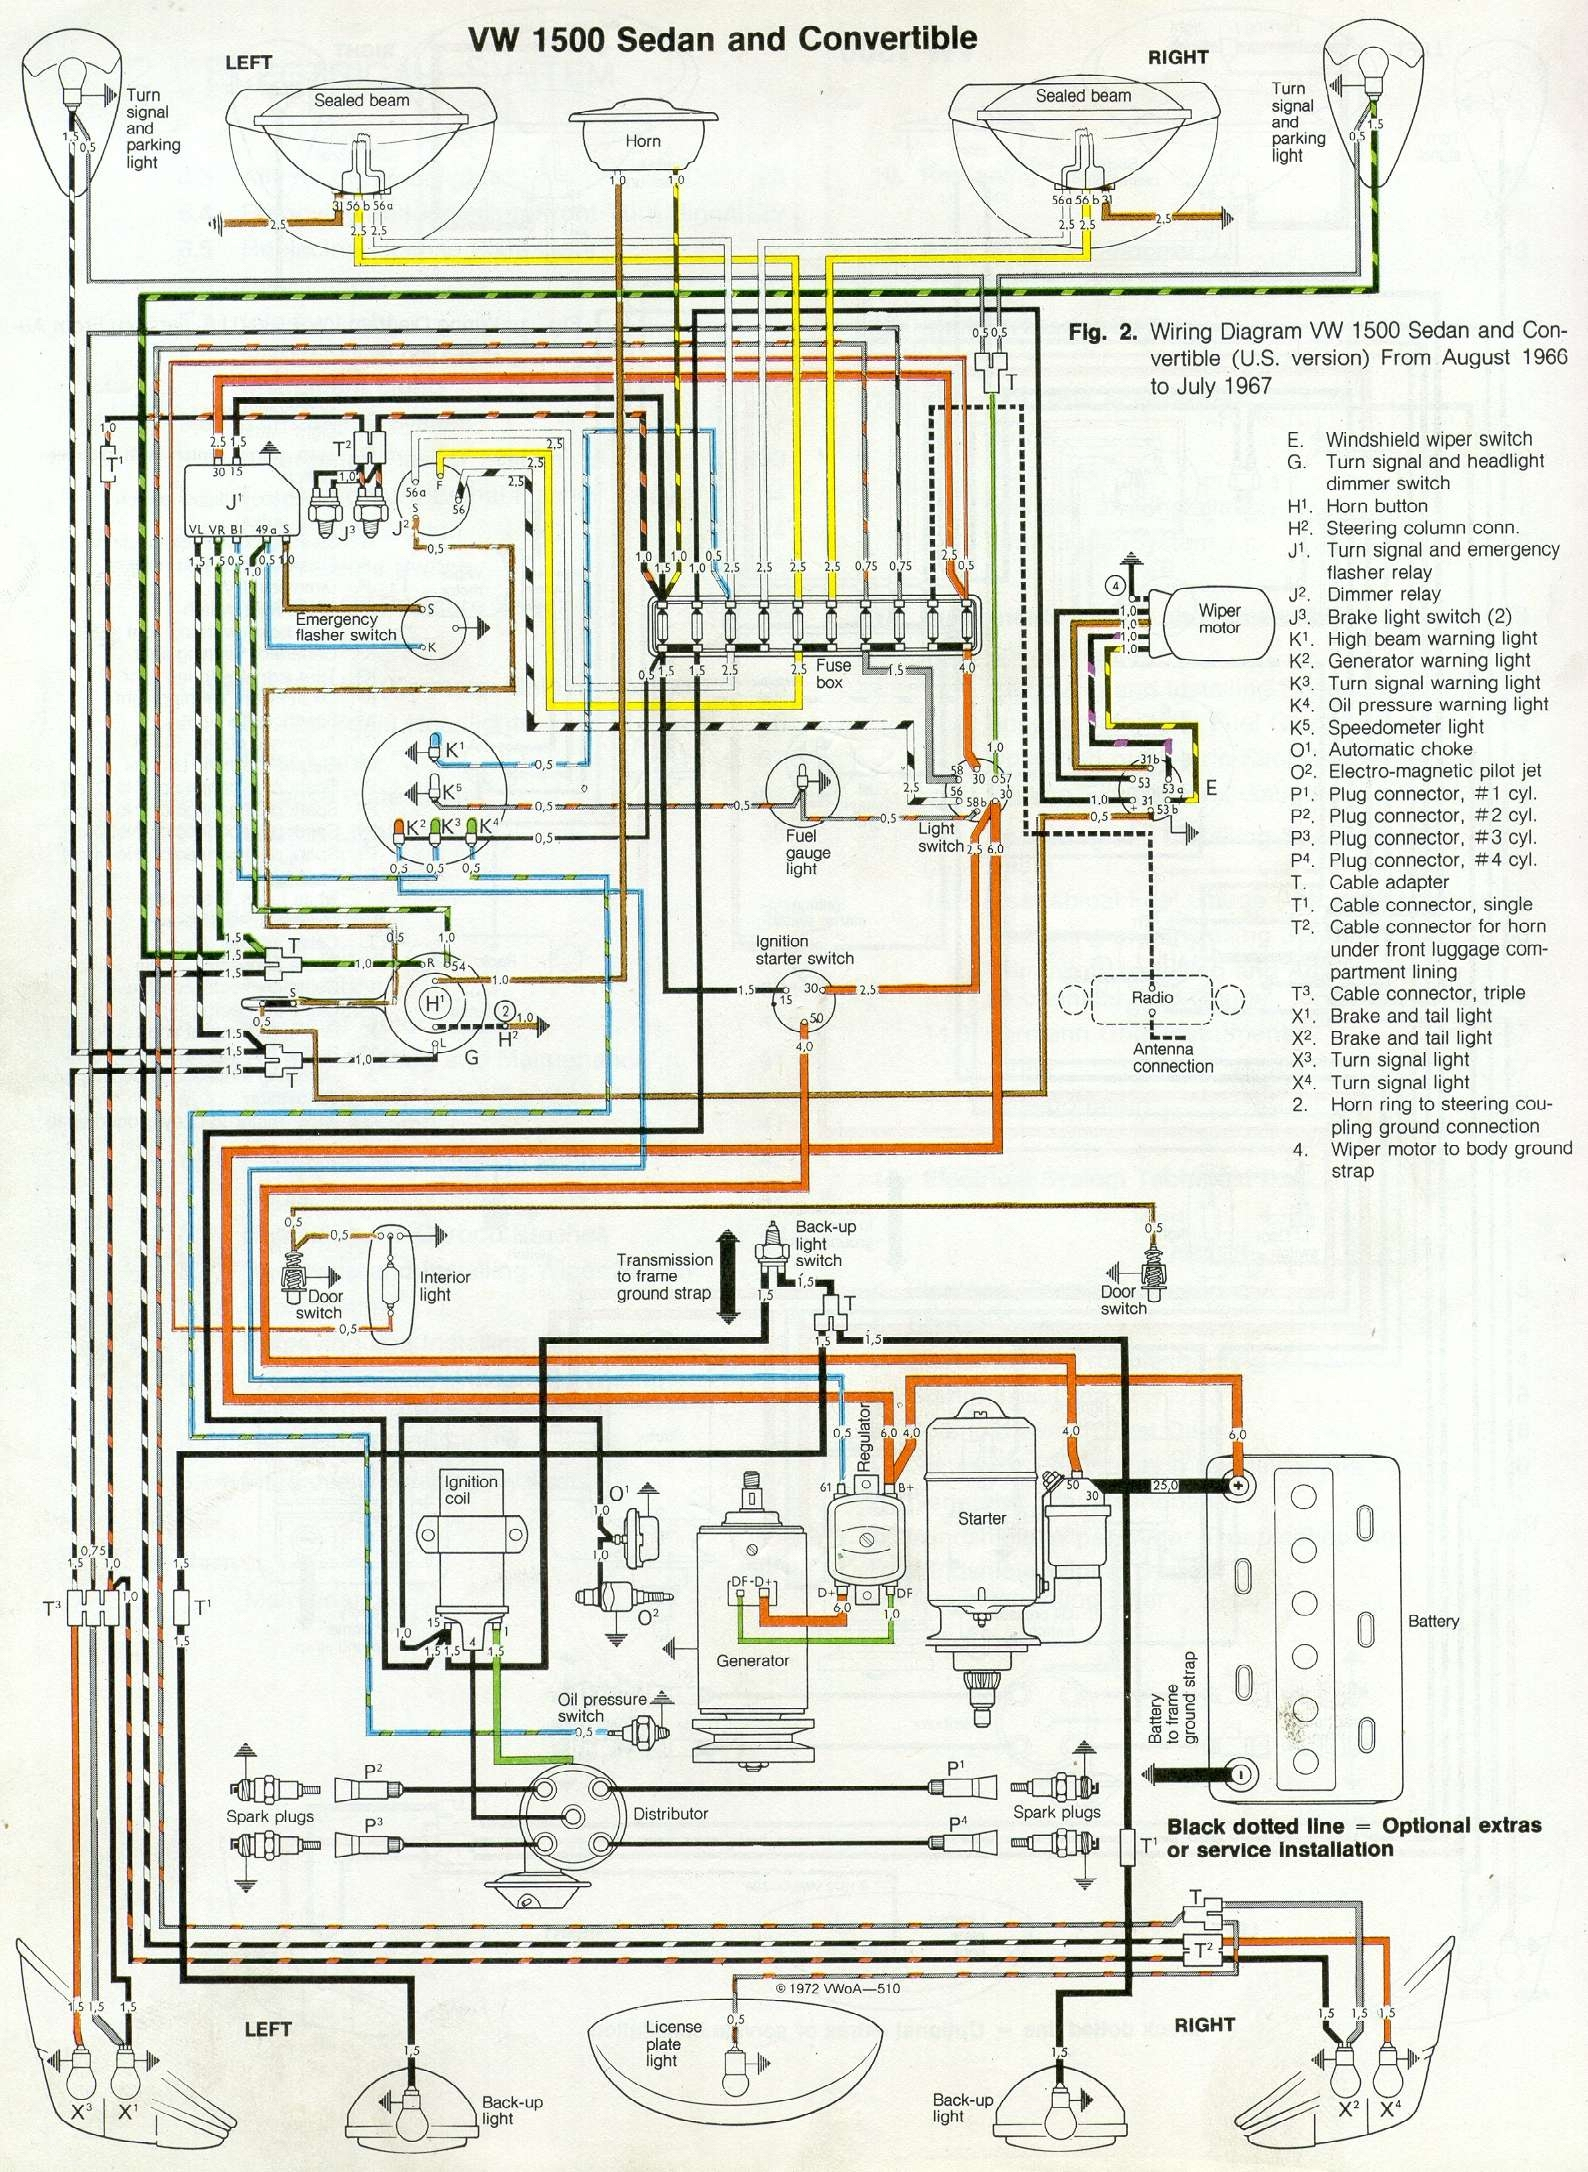 66 and 67 vw beetle wiring diagram 1967 vw beetle rh 1967beetle com 1966 vw beetle wiper motor wiring diagram 1966 volkswagen beetle wiring diagram